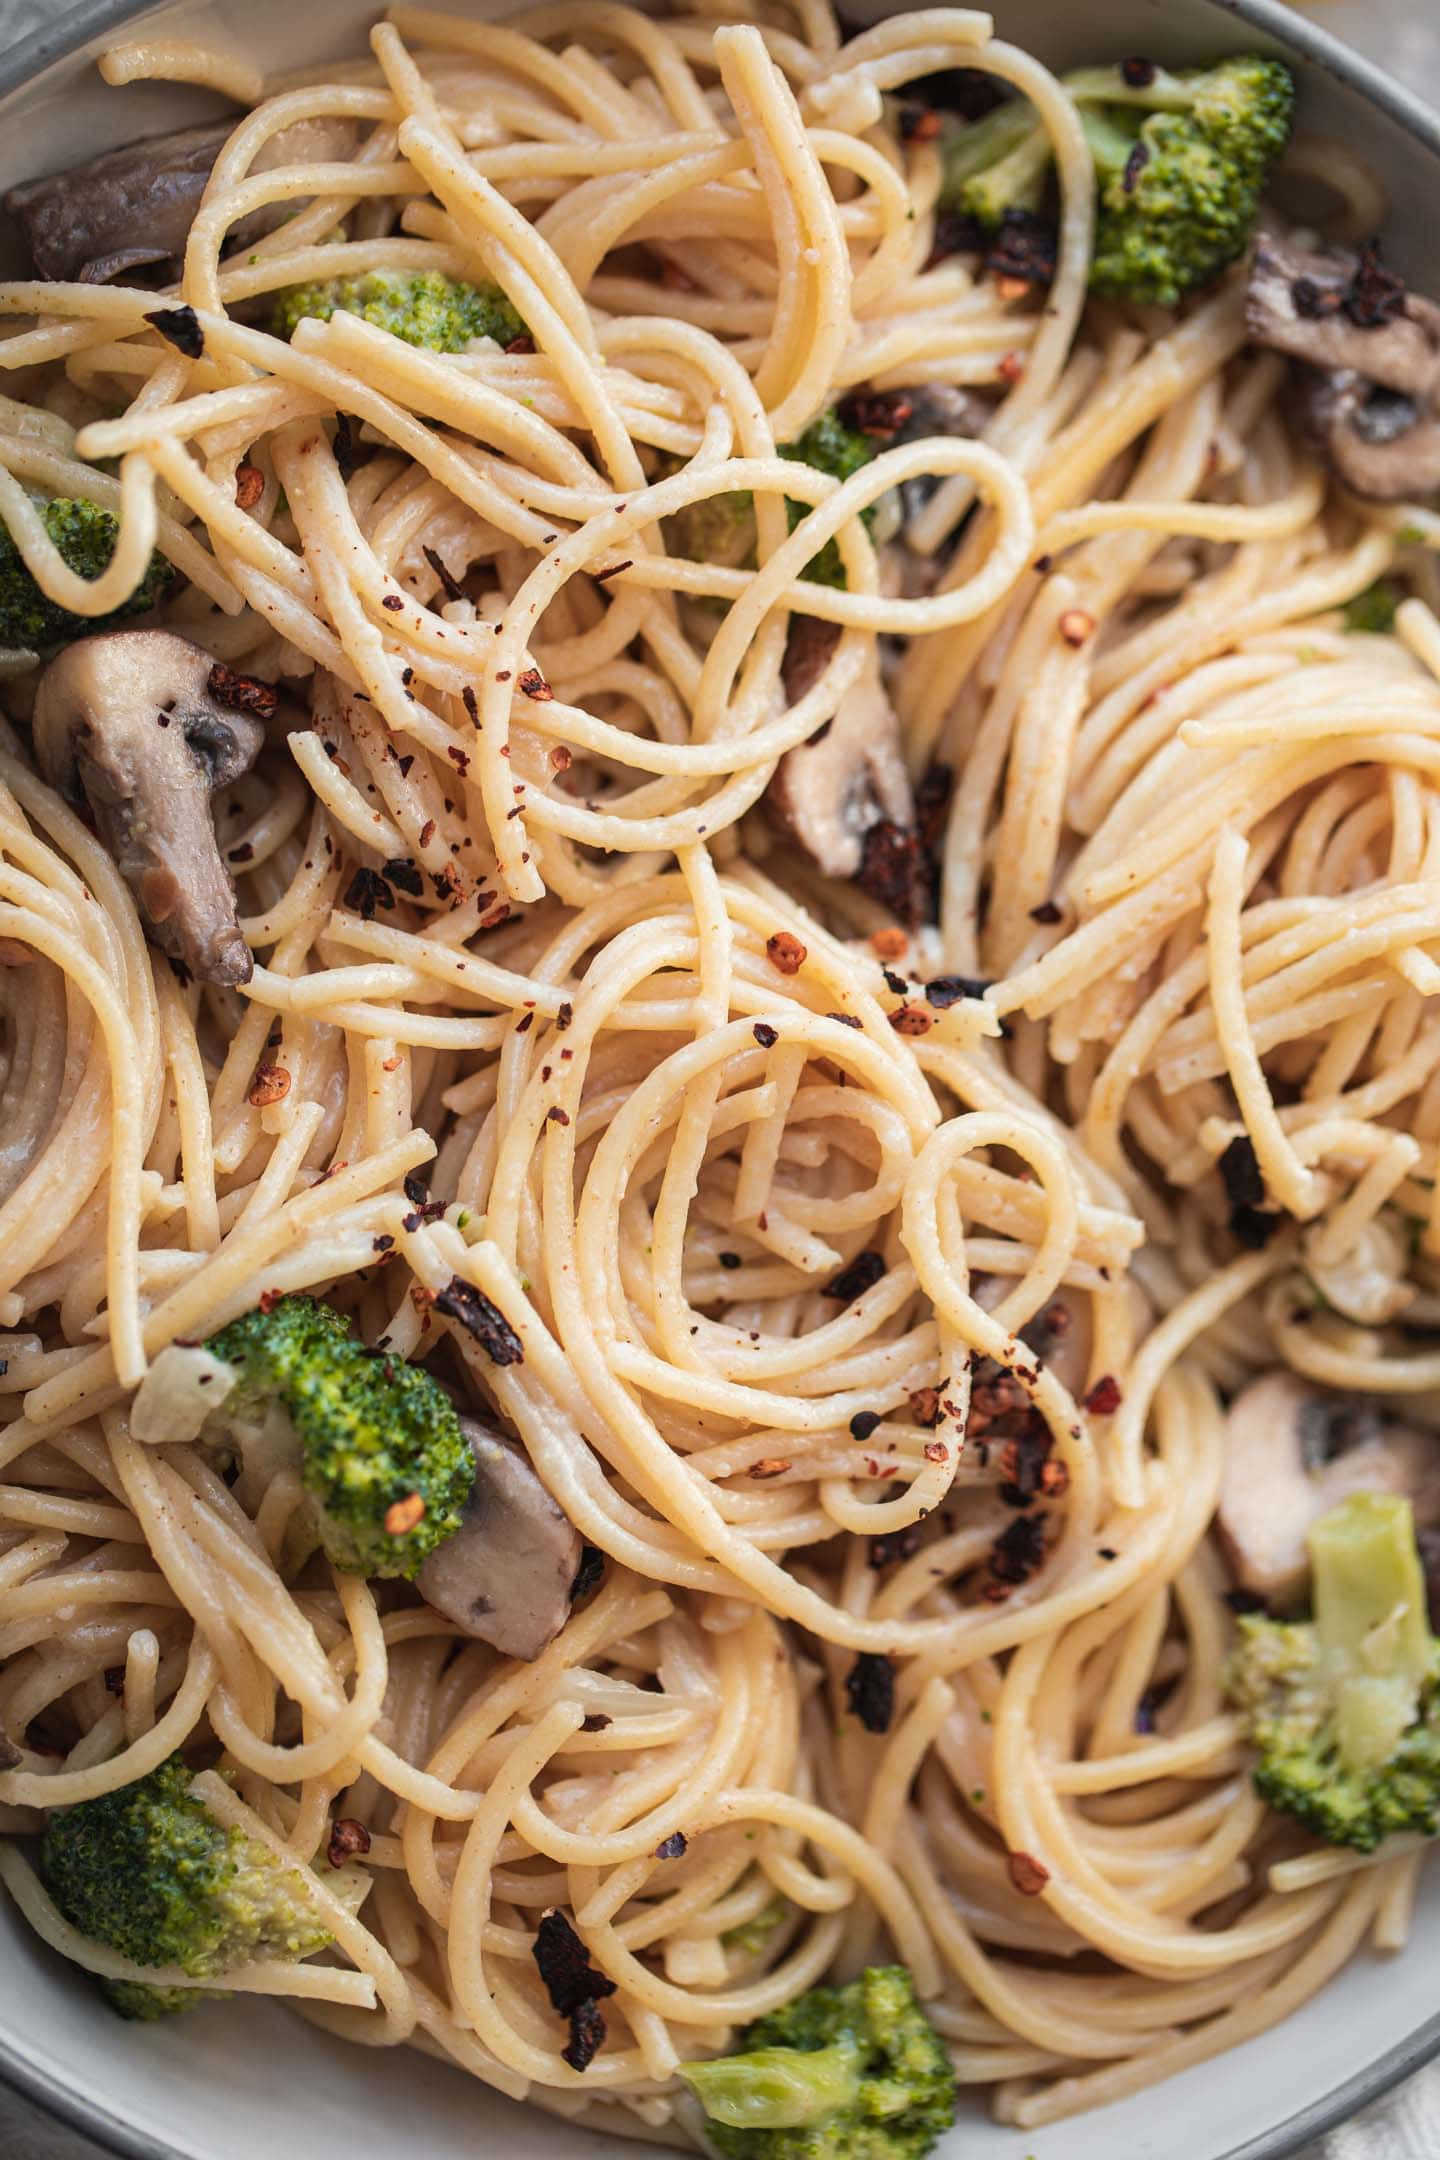 Coconut pasta bowl with broccoli and mushrooms